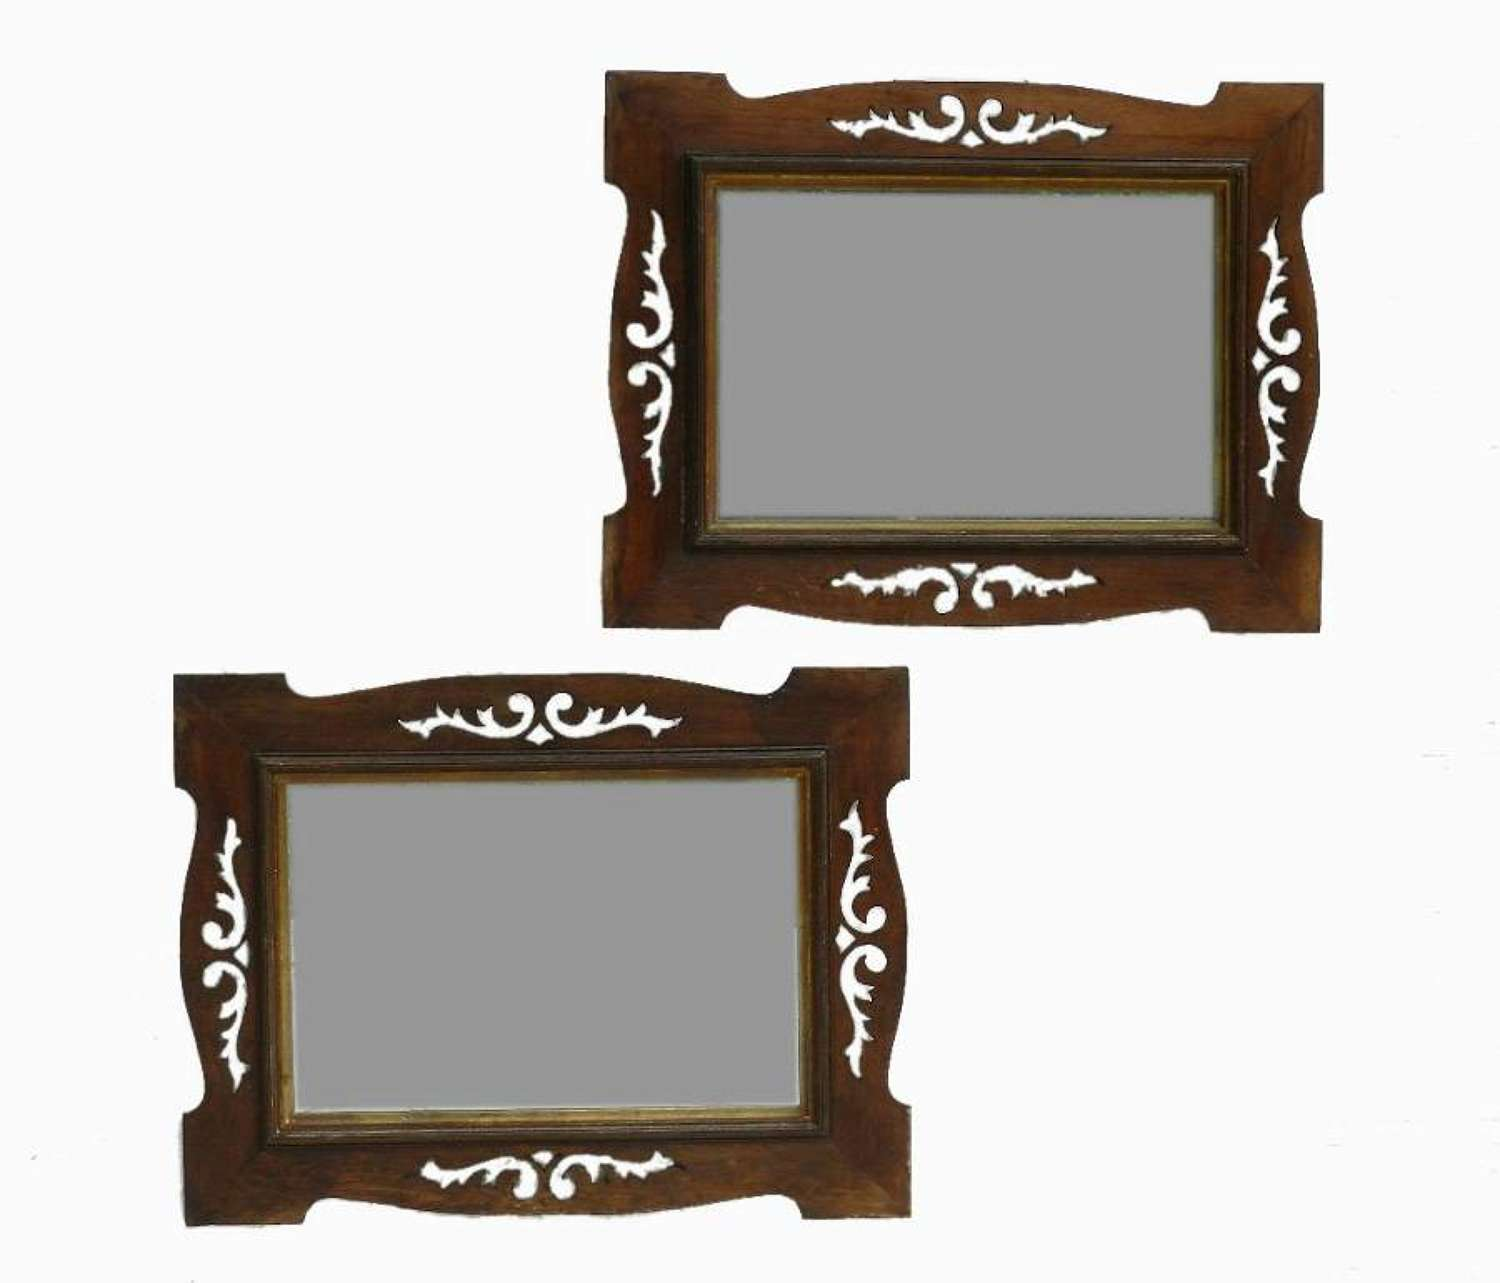 Pair of French Mirrors Art Nouveau / Arts & Crafts